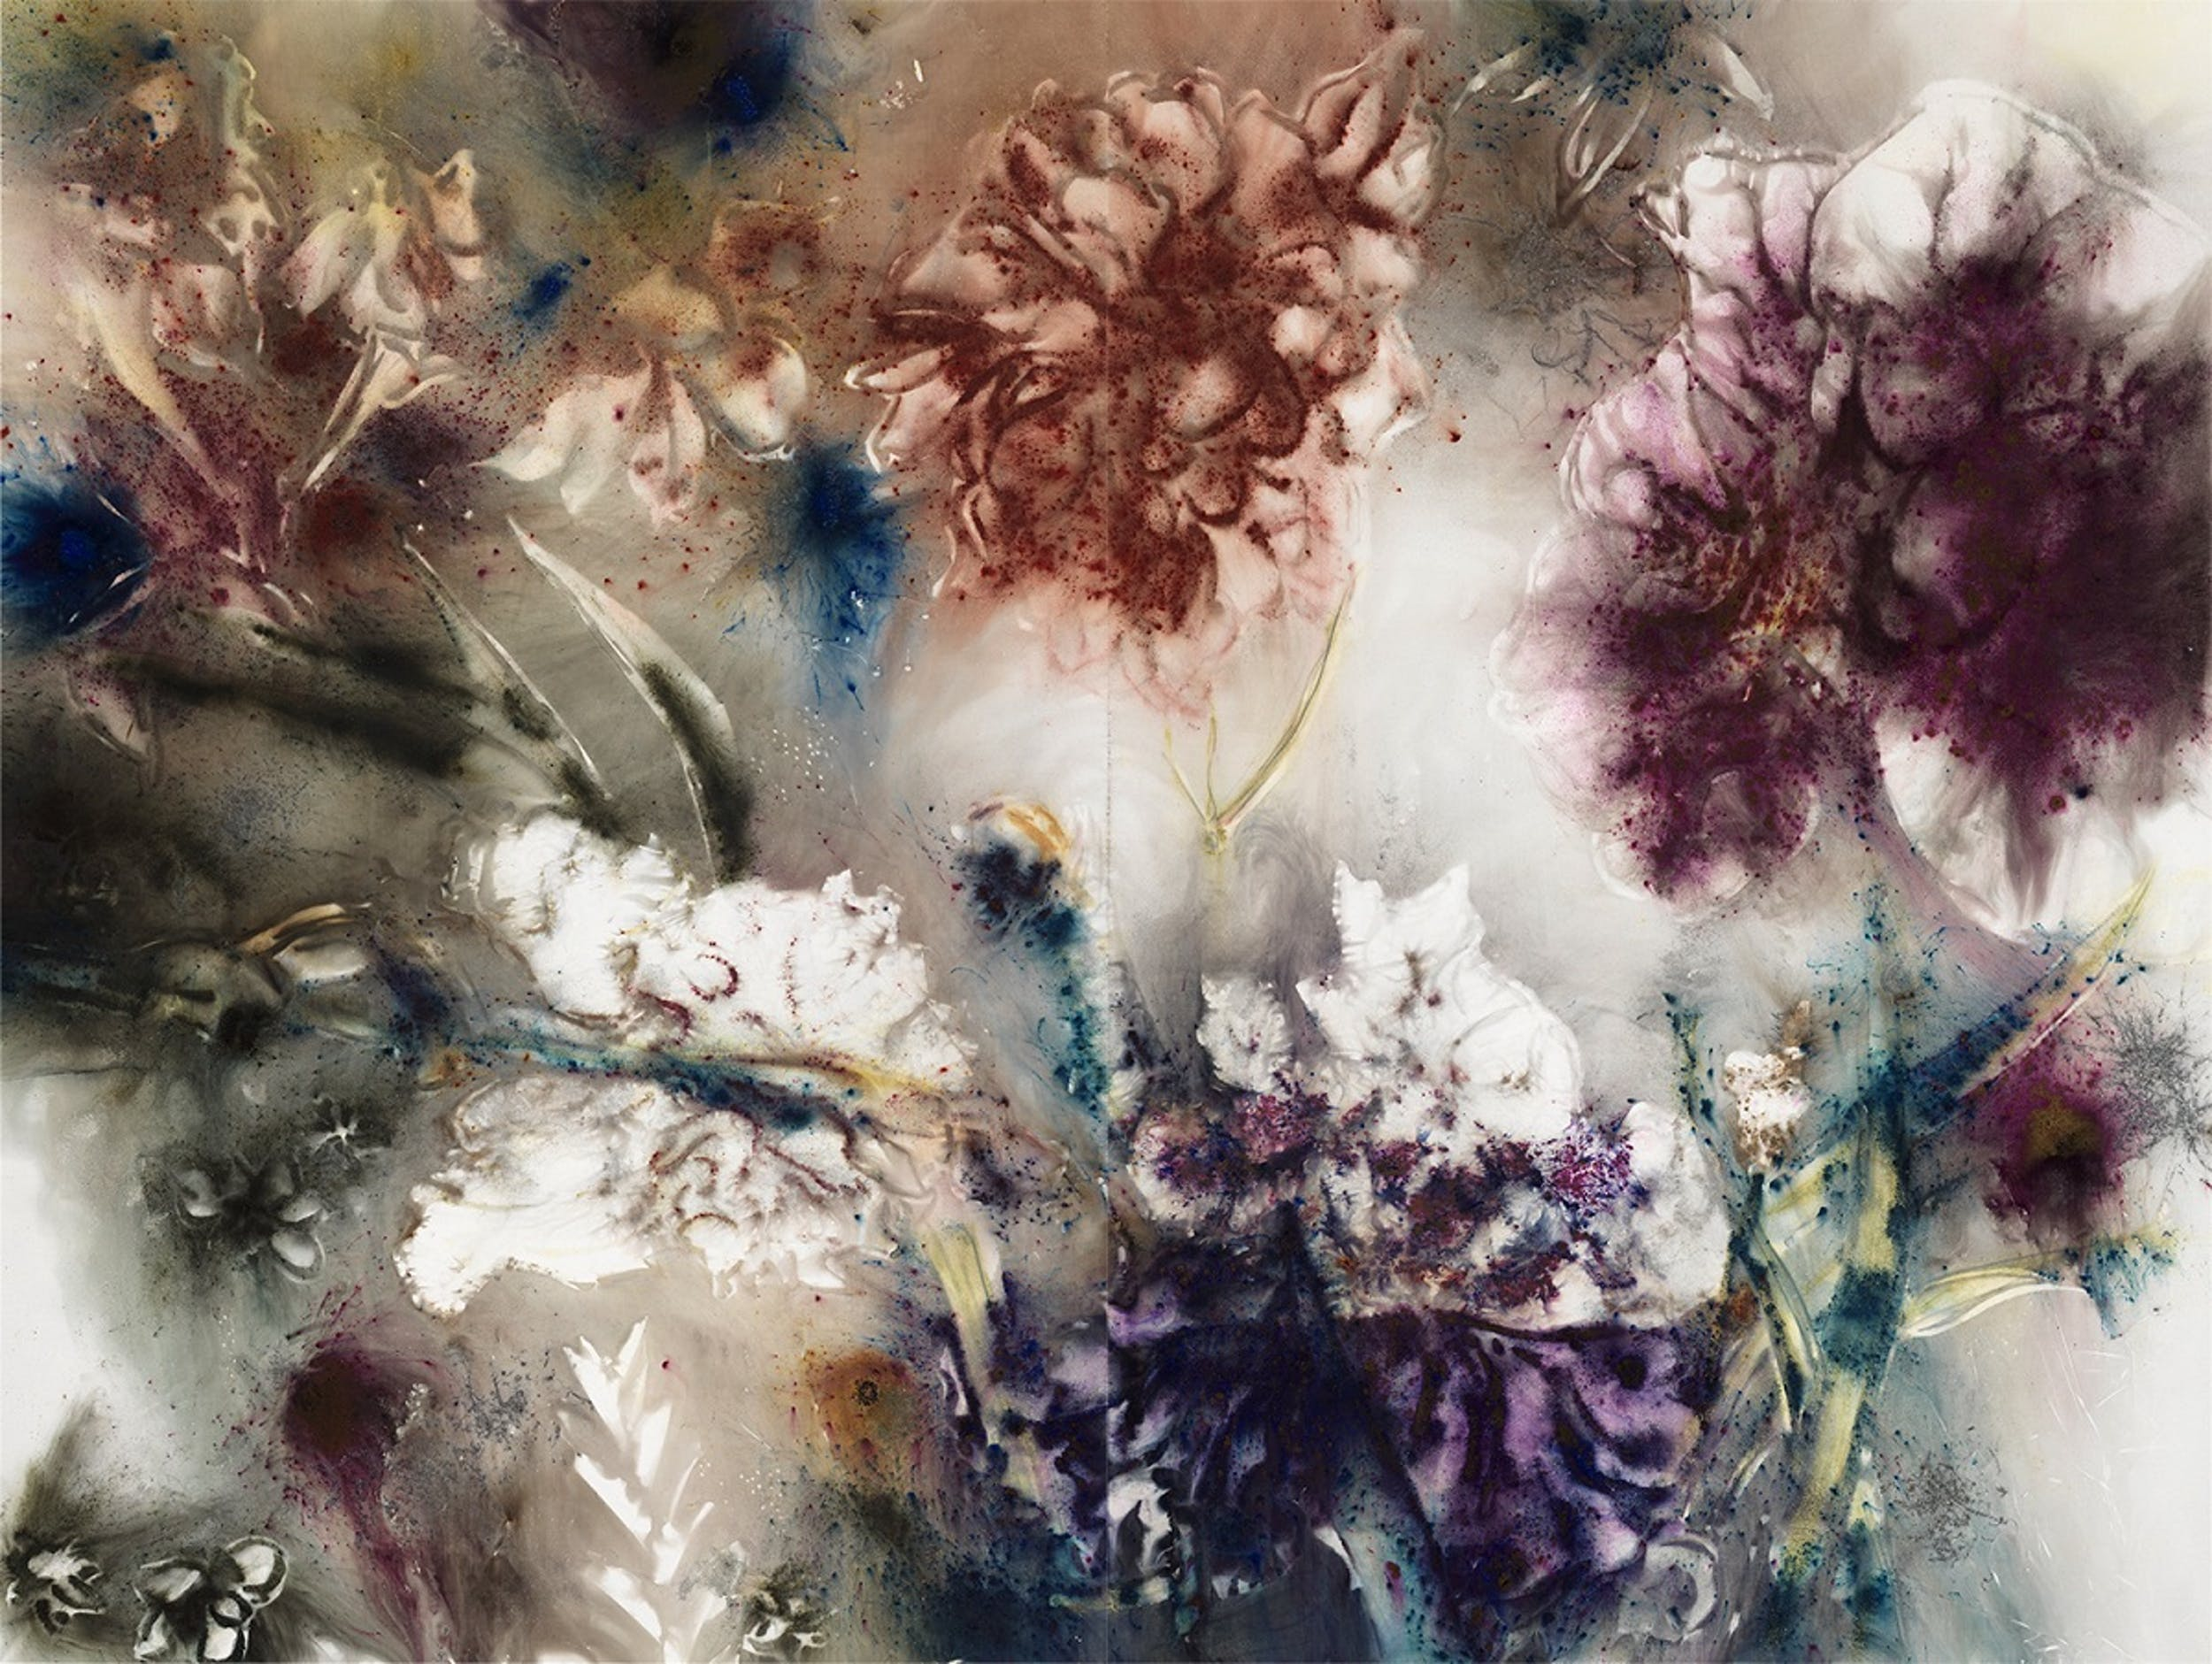 Renaissance Flower Garden, 2018 Gunpowder on canvas; 300 x 400 cm - Photo by Yvonne Zhao, courtesy Cai Studio.